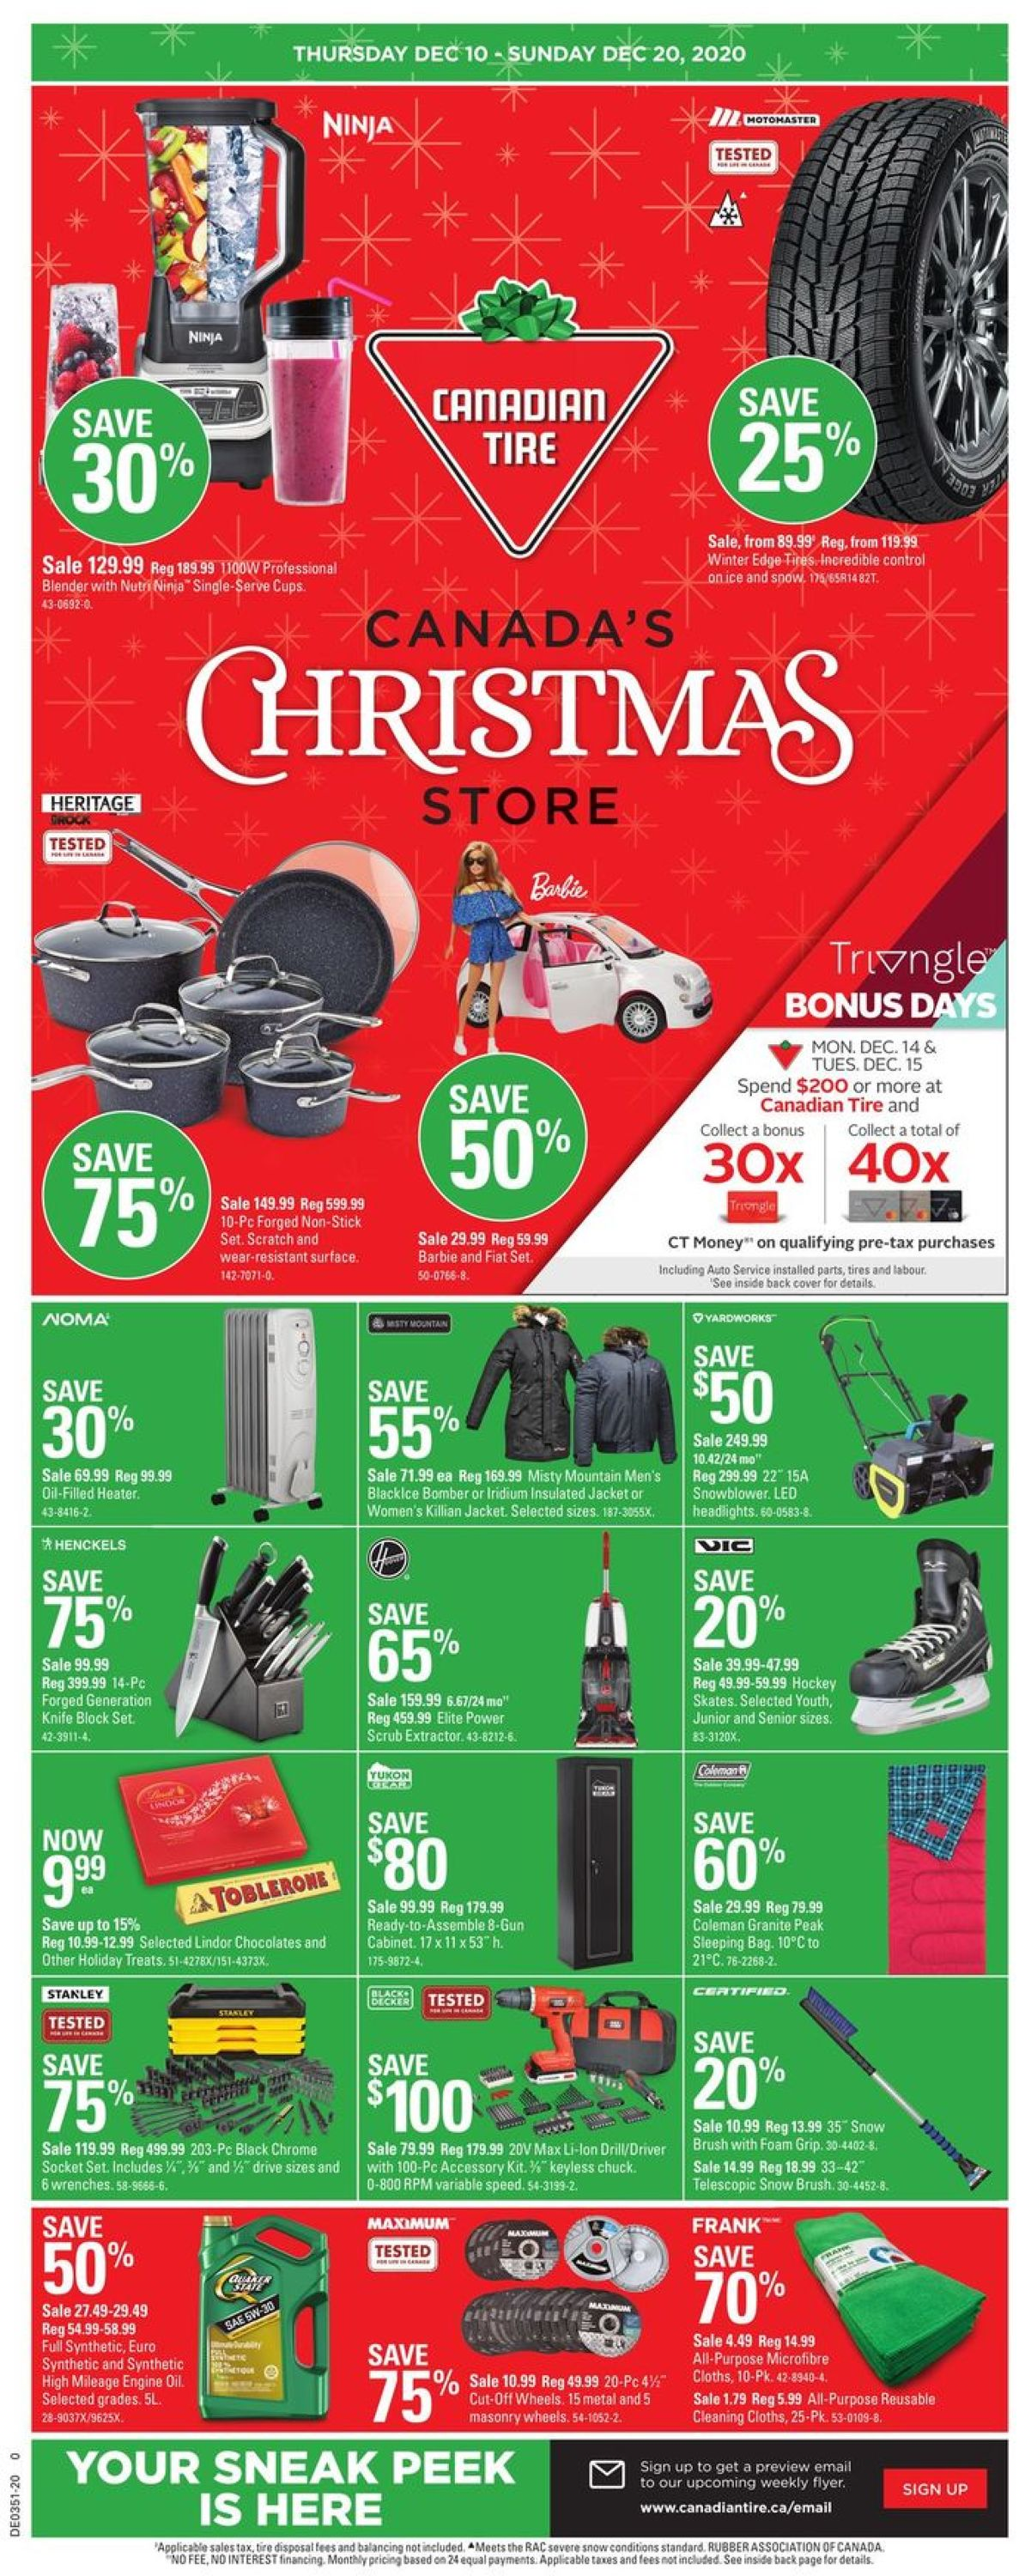 Canadian Tire Christmas Store 2020 Flyer - 12/10-12/20/2020